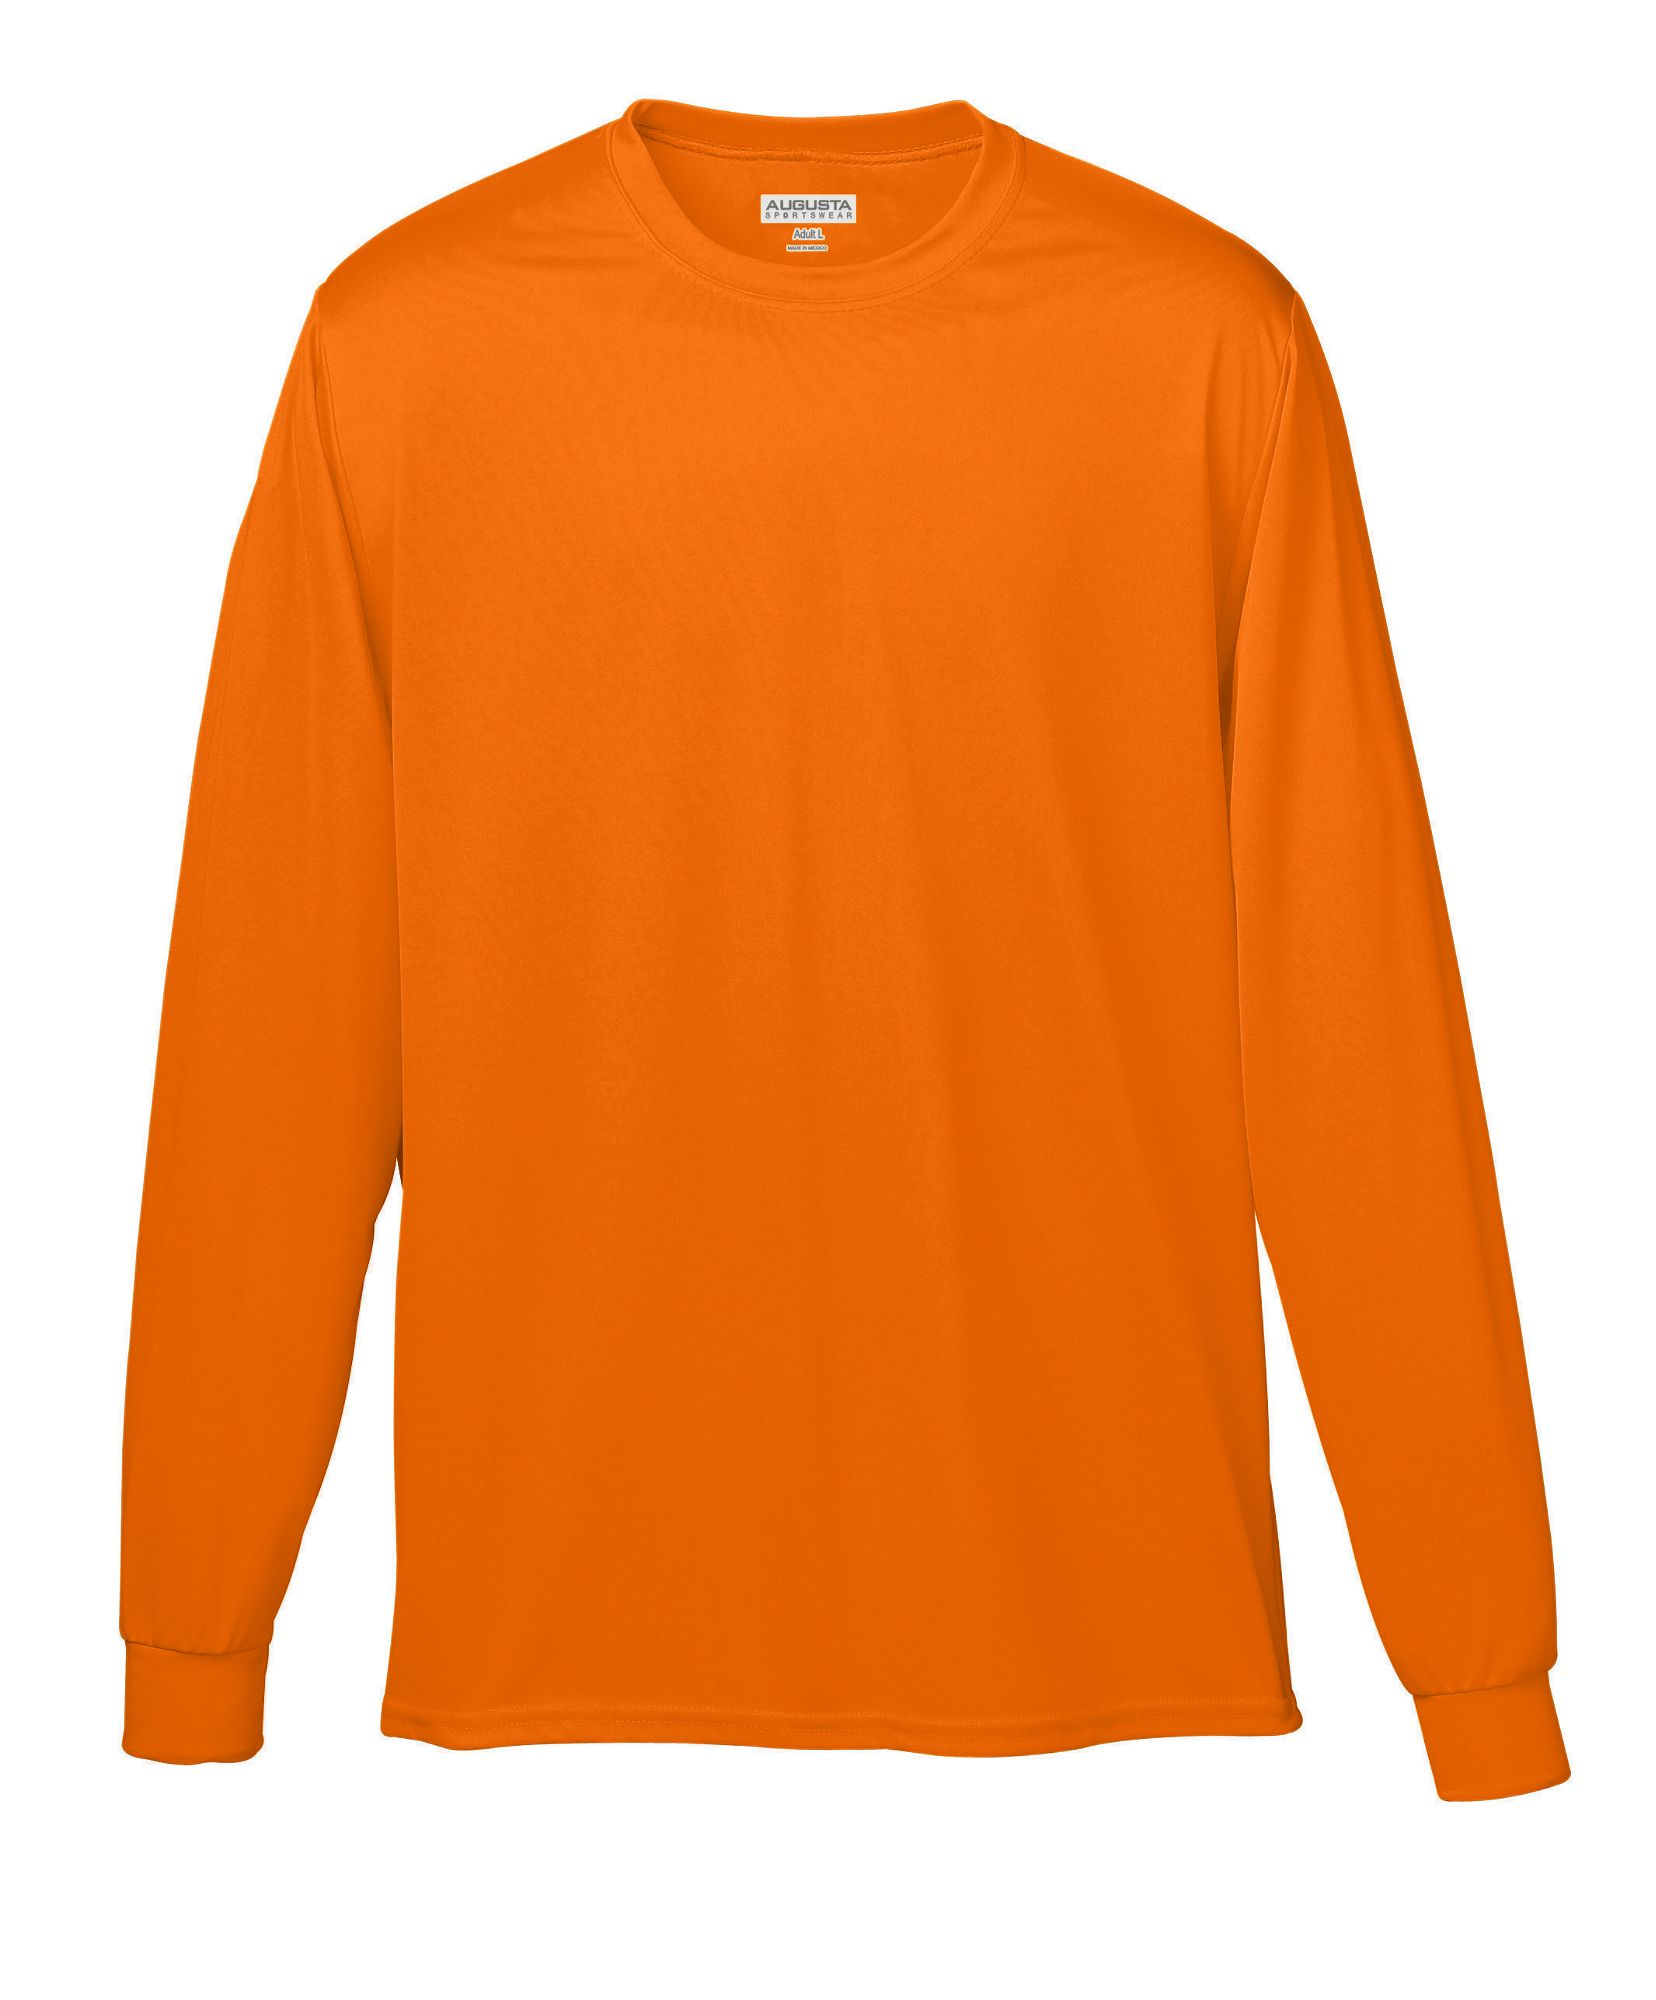 Men s Long Sleeve Athletic Tops from Augusta Sportswear e7ad577f4f8